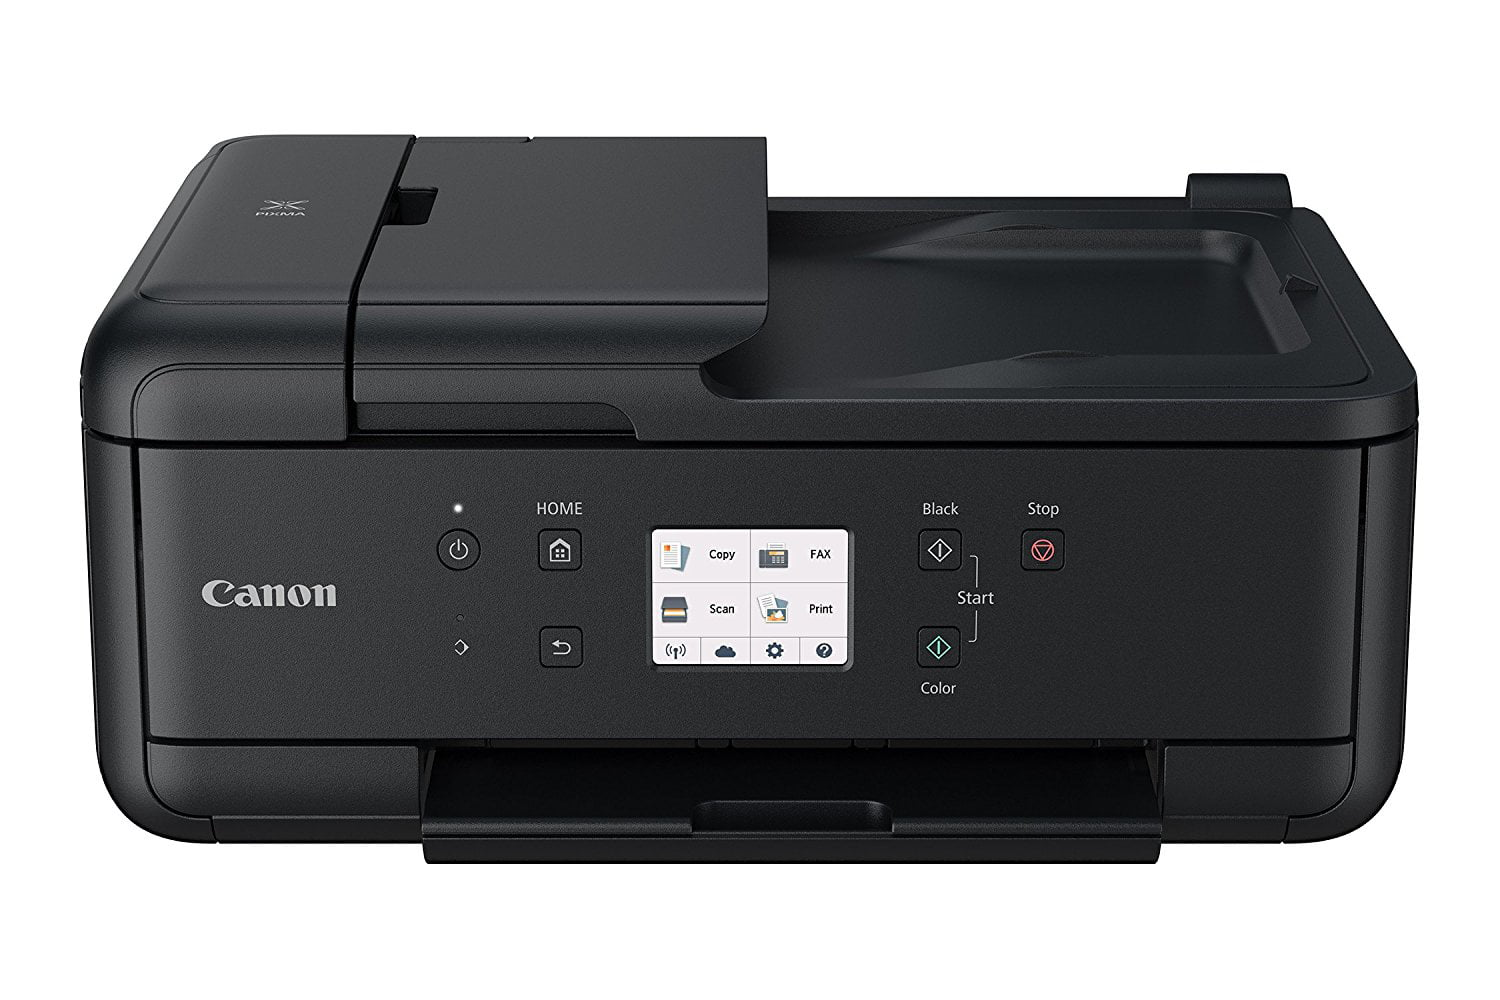 CANON PIXMA MP150 WINDOWS VISTA DRIVER